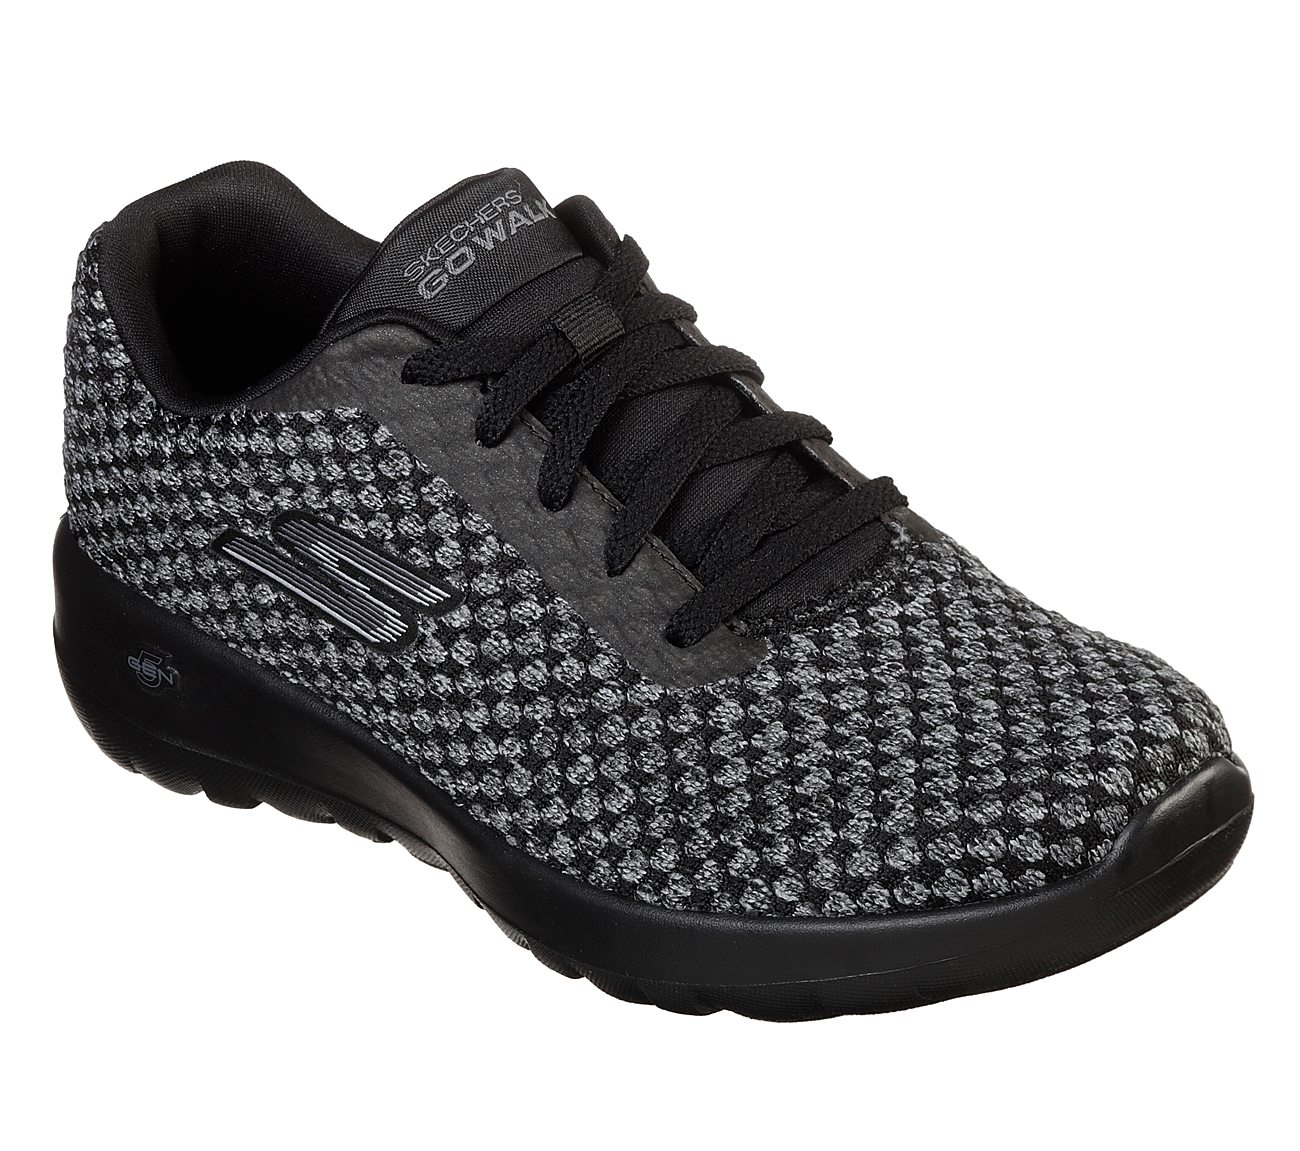 b22d7de330914 Buy SKECHERS Skechers GOwalk Joy - Pivotal Skechers Performance ...